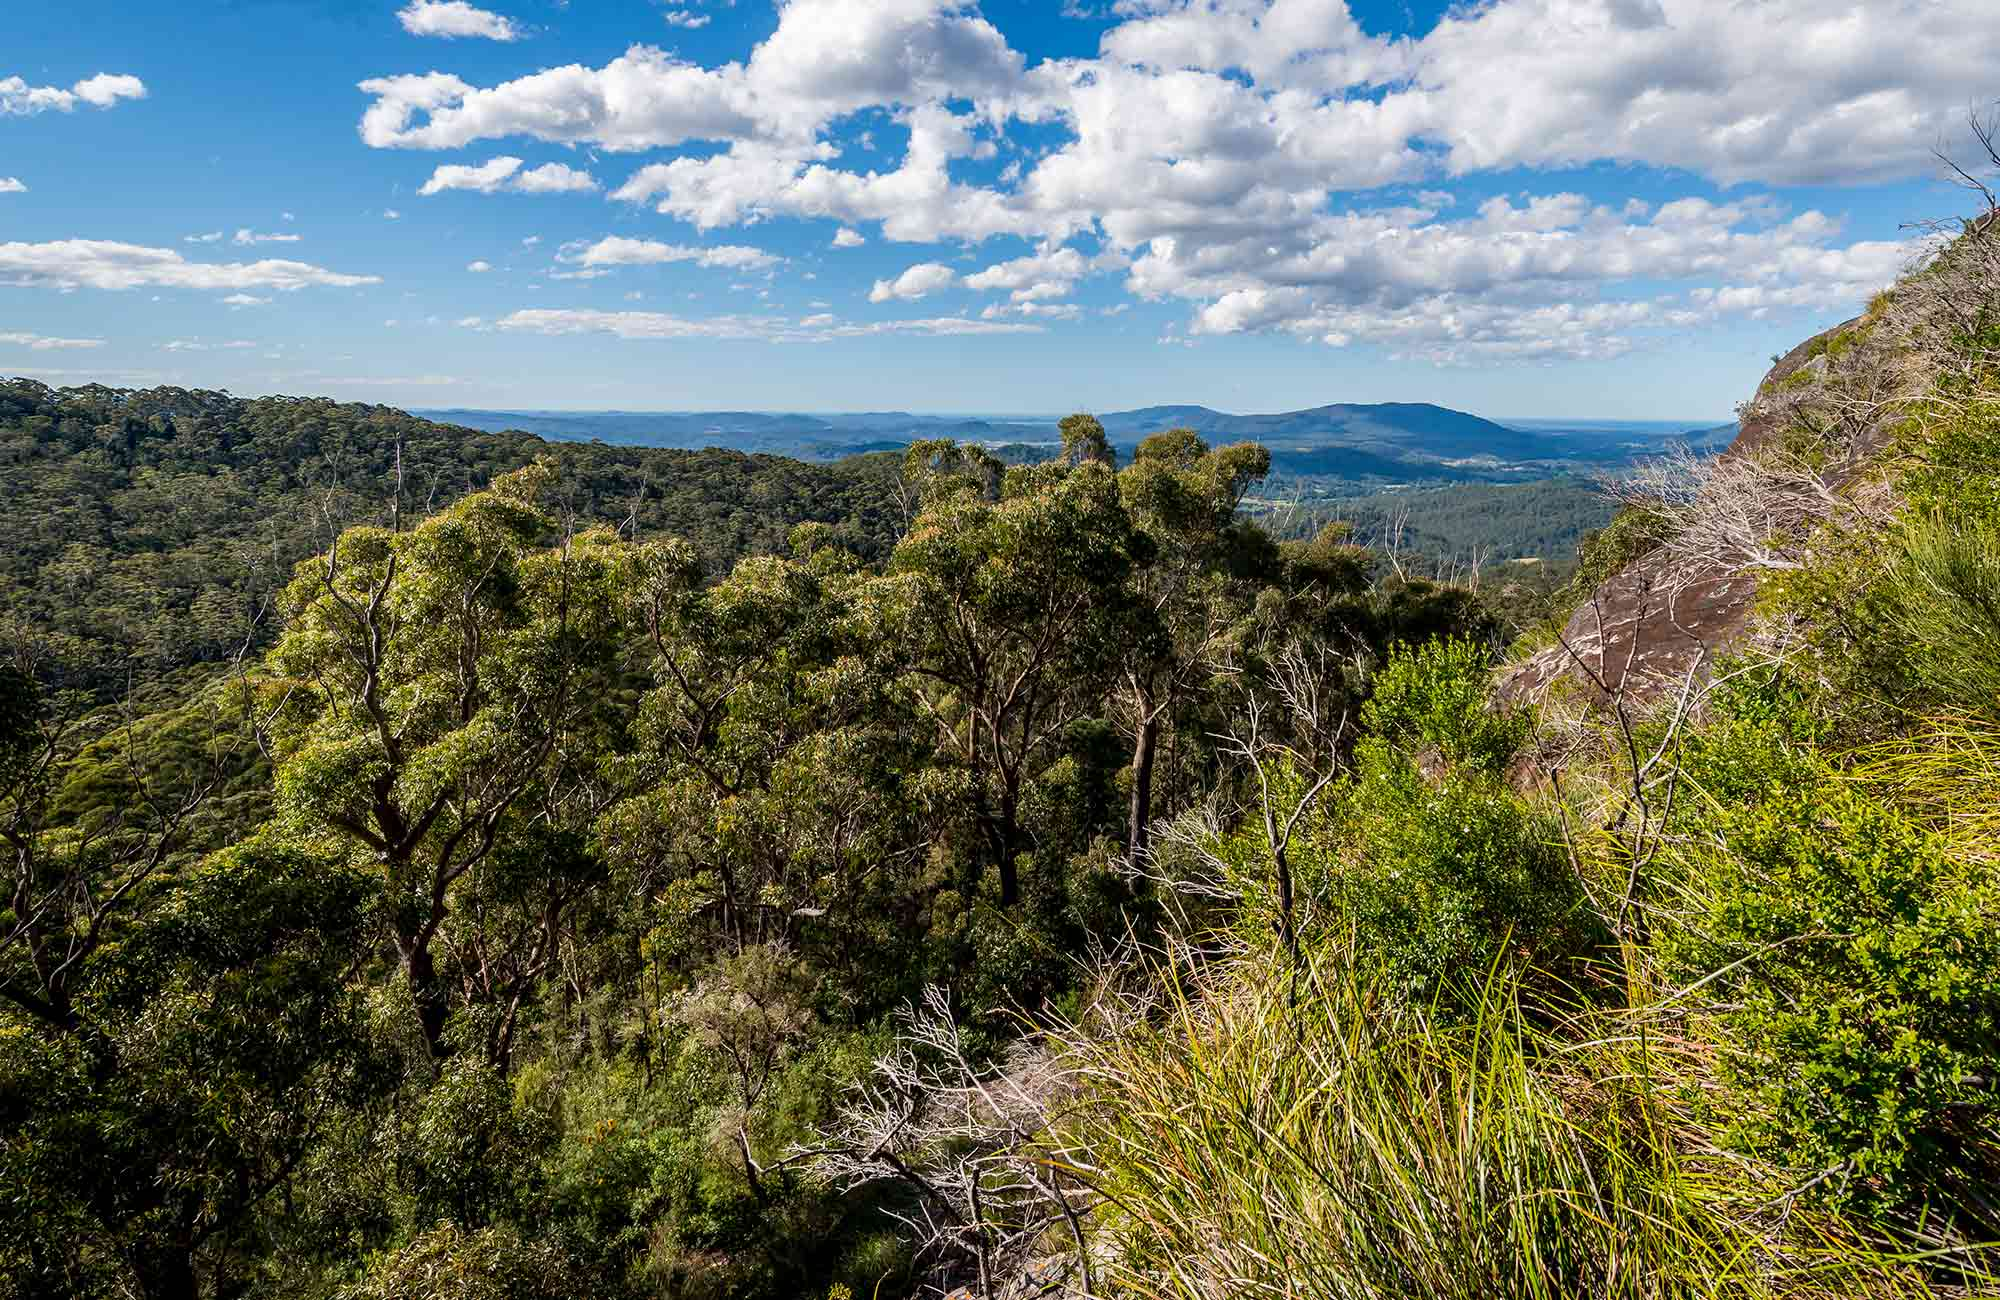 Big Nellie lookout and picnic area, Coorabakh National Park. Photo: John Spencer